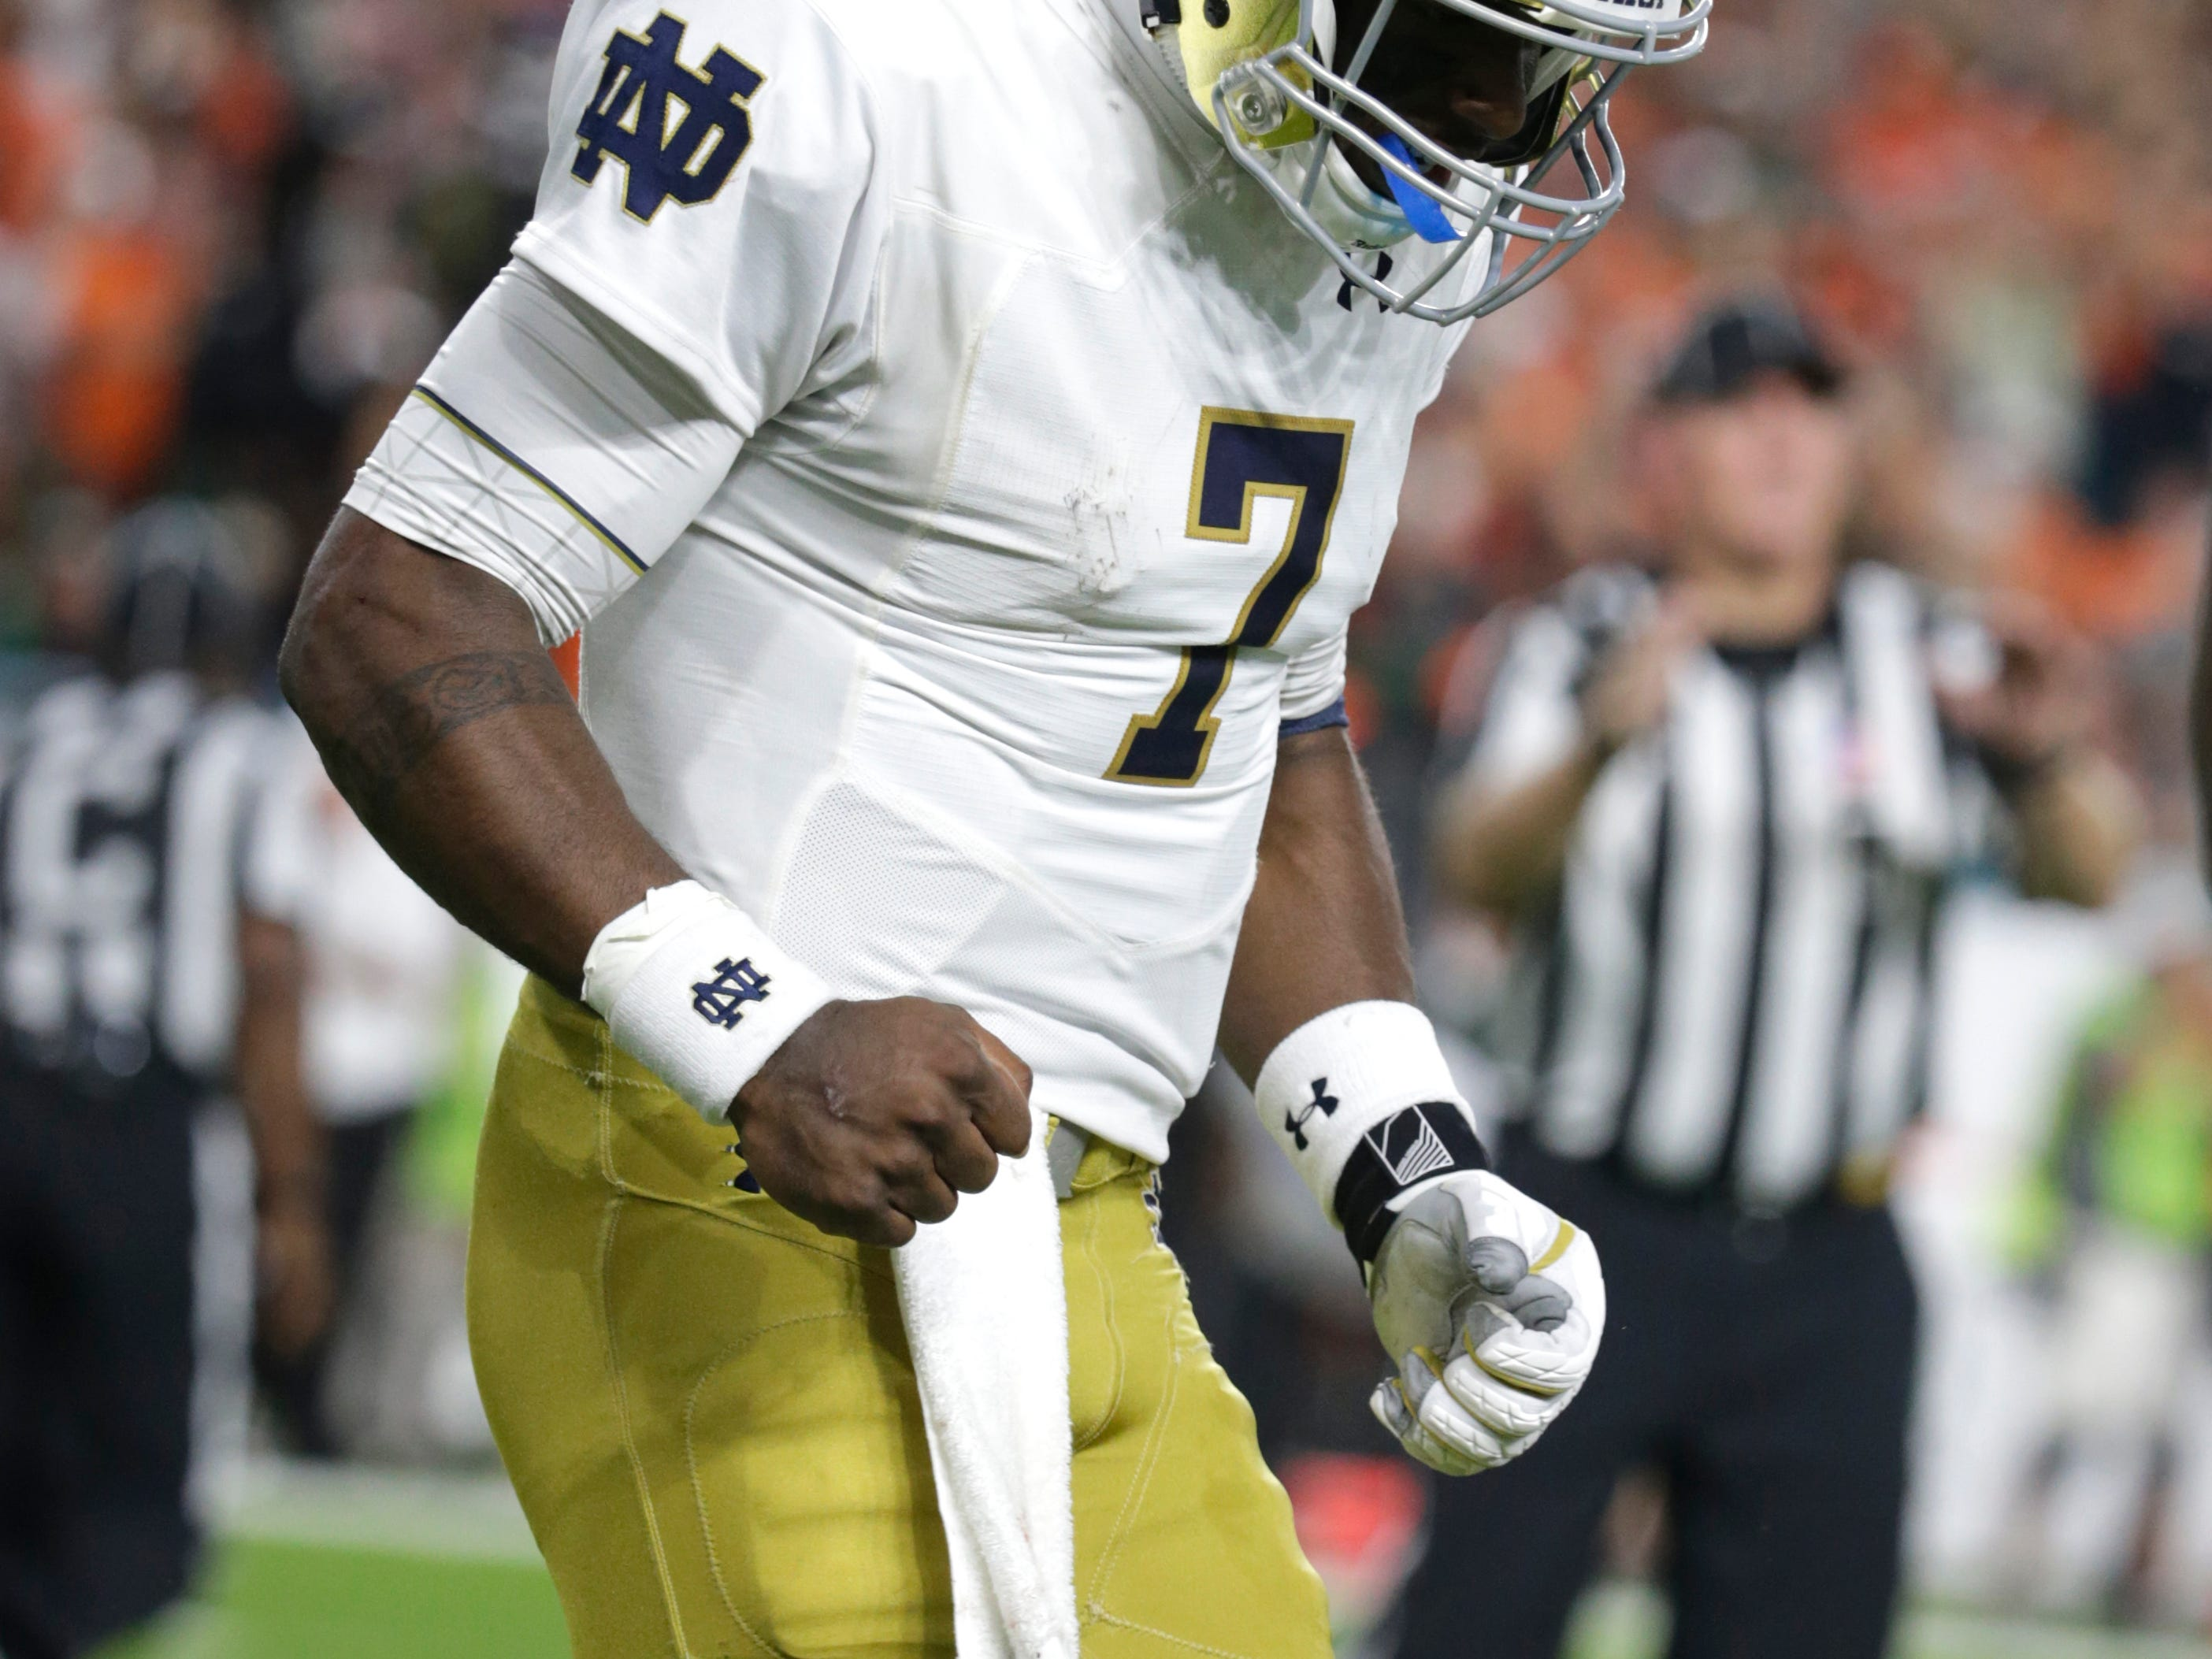 Notre Dame quarterback Brandon Wimbush (7) walks off the field after throwing an interception during the first half of an NCAA college football game against Miami, Saturday, Nov. 11, 2017, in Miami Gardens, Fla. (AP Photo/Lynne Sladky)